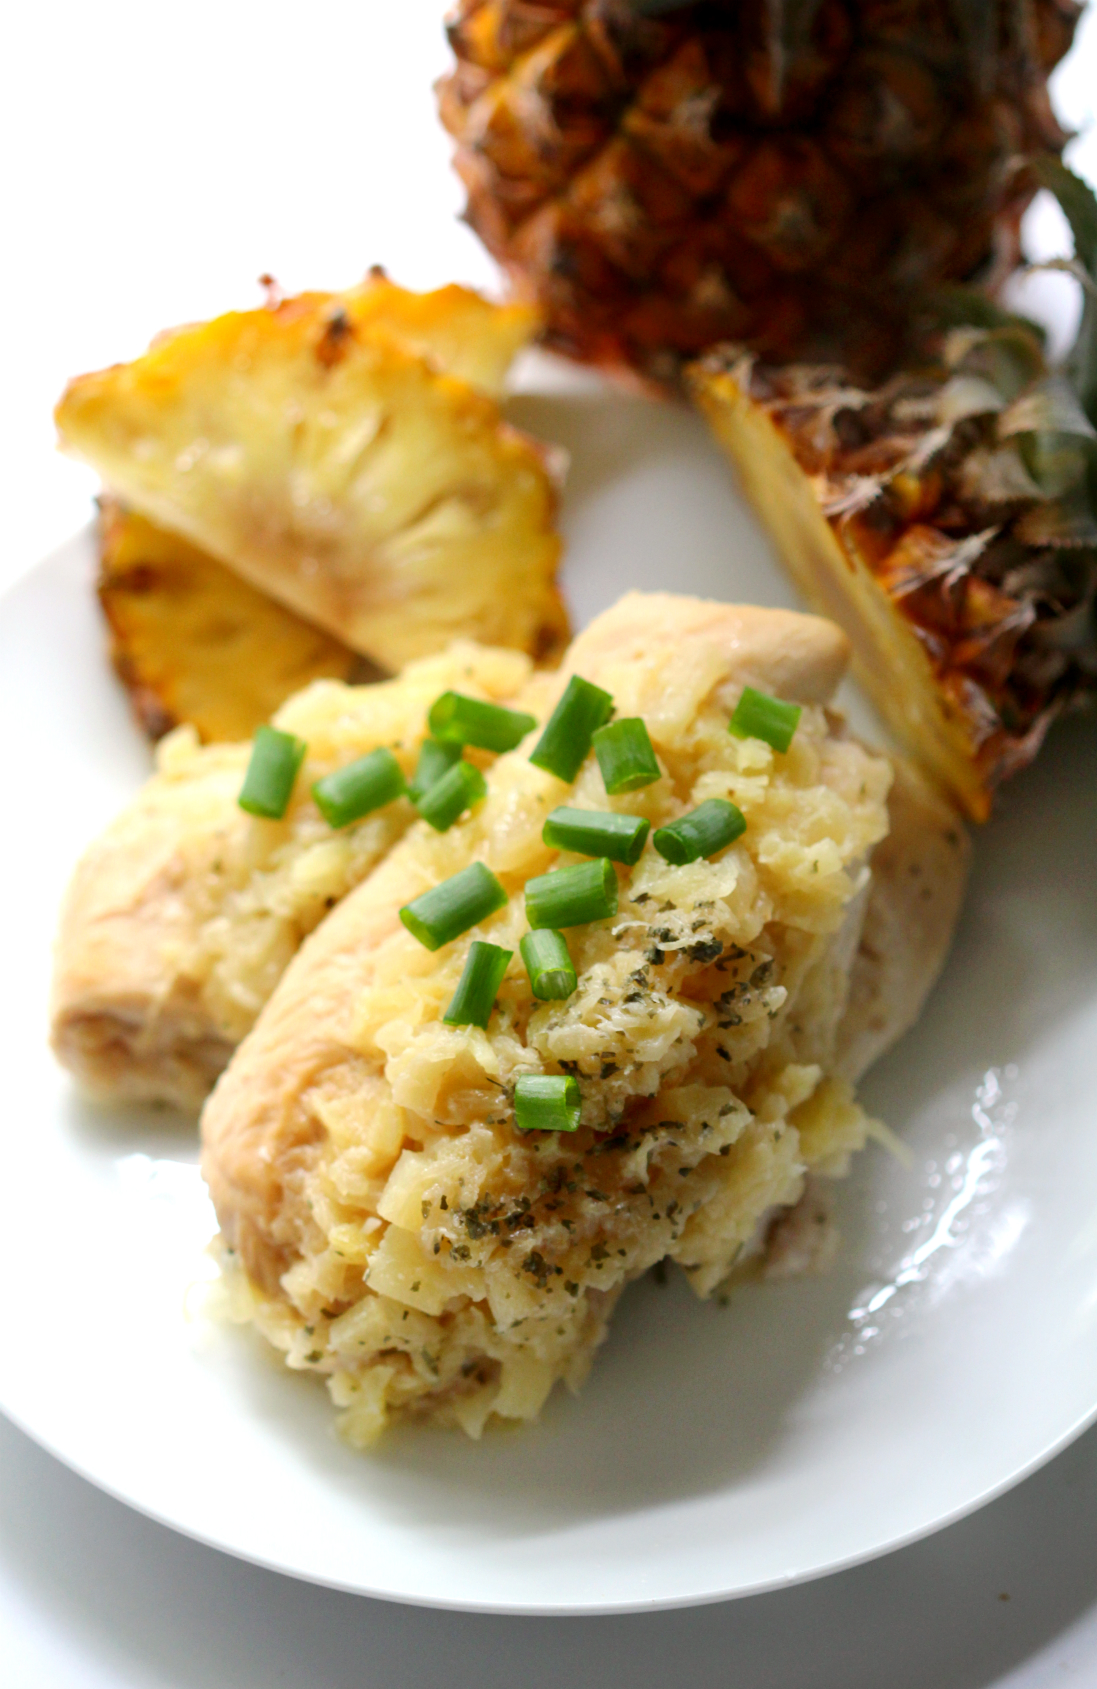 Slow Cooker Macadamia Pineapple Chicken | Strength and Sunshine @RebeccaGF666 Set your slow cooker and when you come home you'll be taking a trip to the tropics. Slow Cooker Macadamia Pineapple Chicken is the perfect balance of sweet and savory with a tropical flare. A delicious and easy gluten-free paleo dinner recipe.